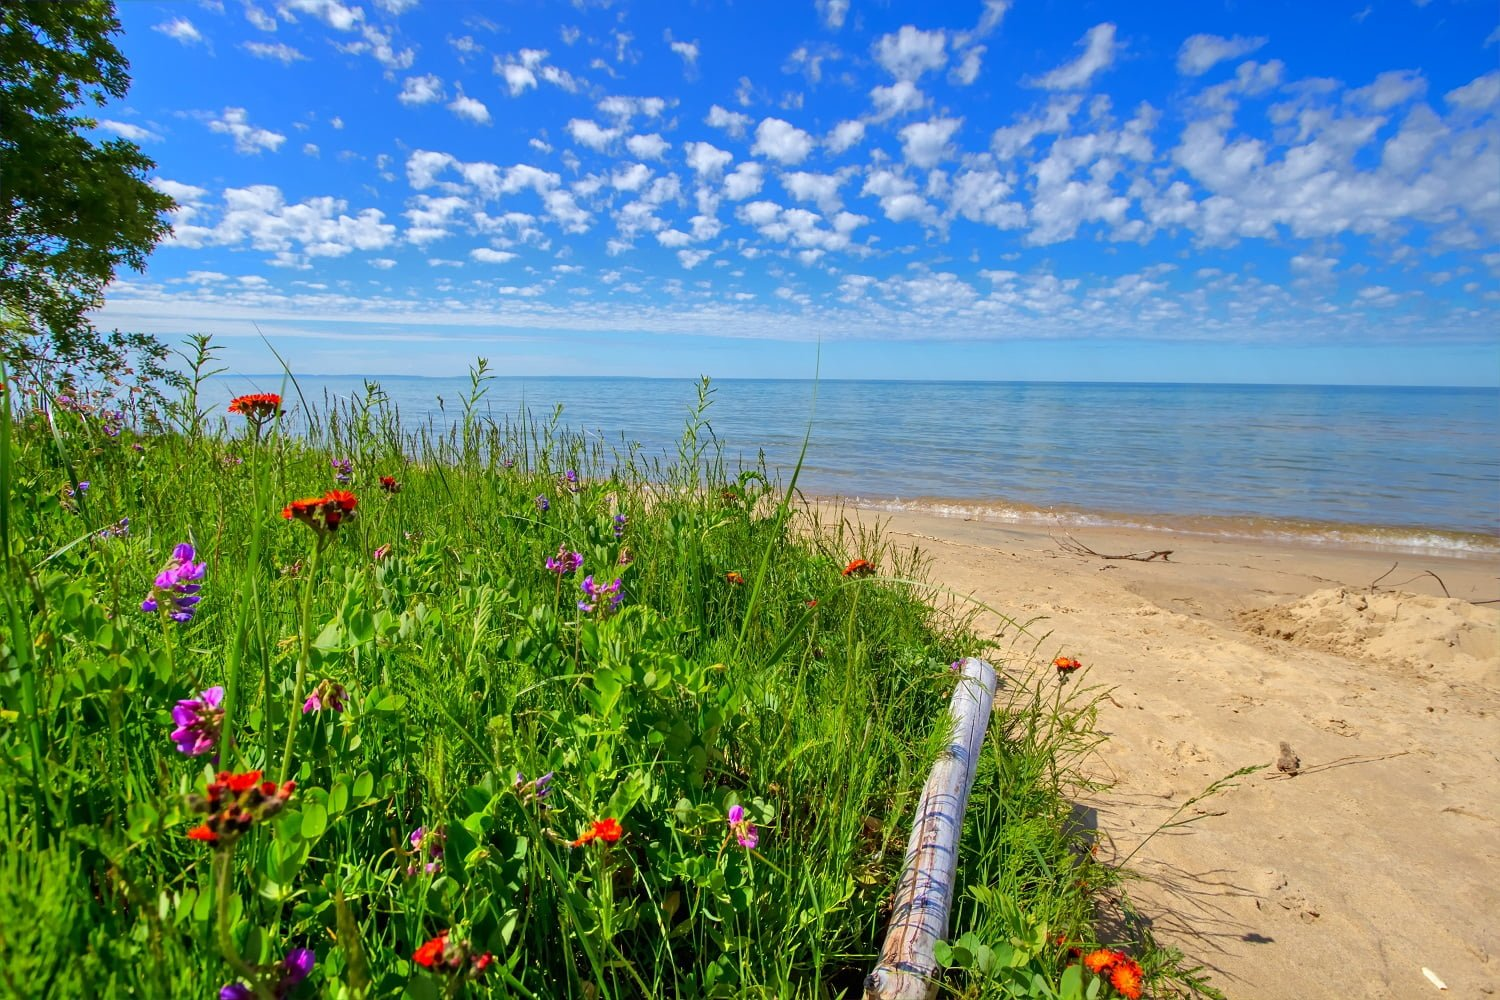 Wildflowers On The Beach